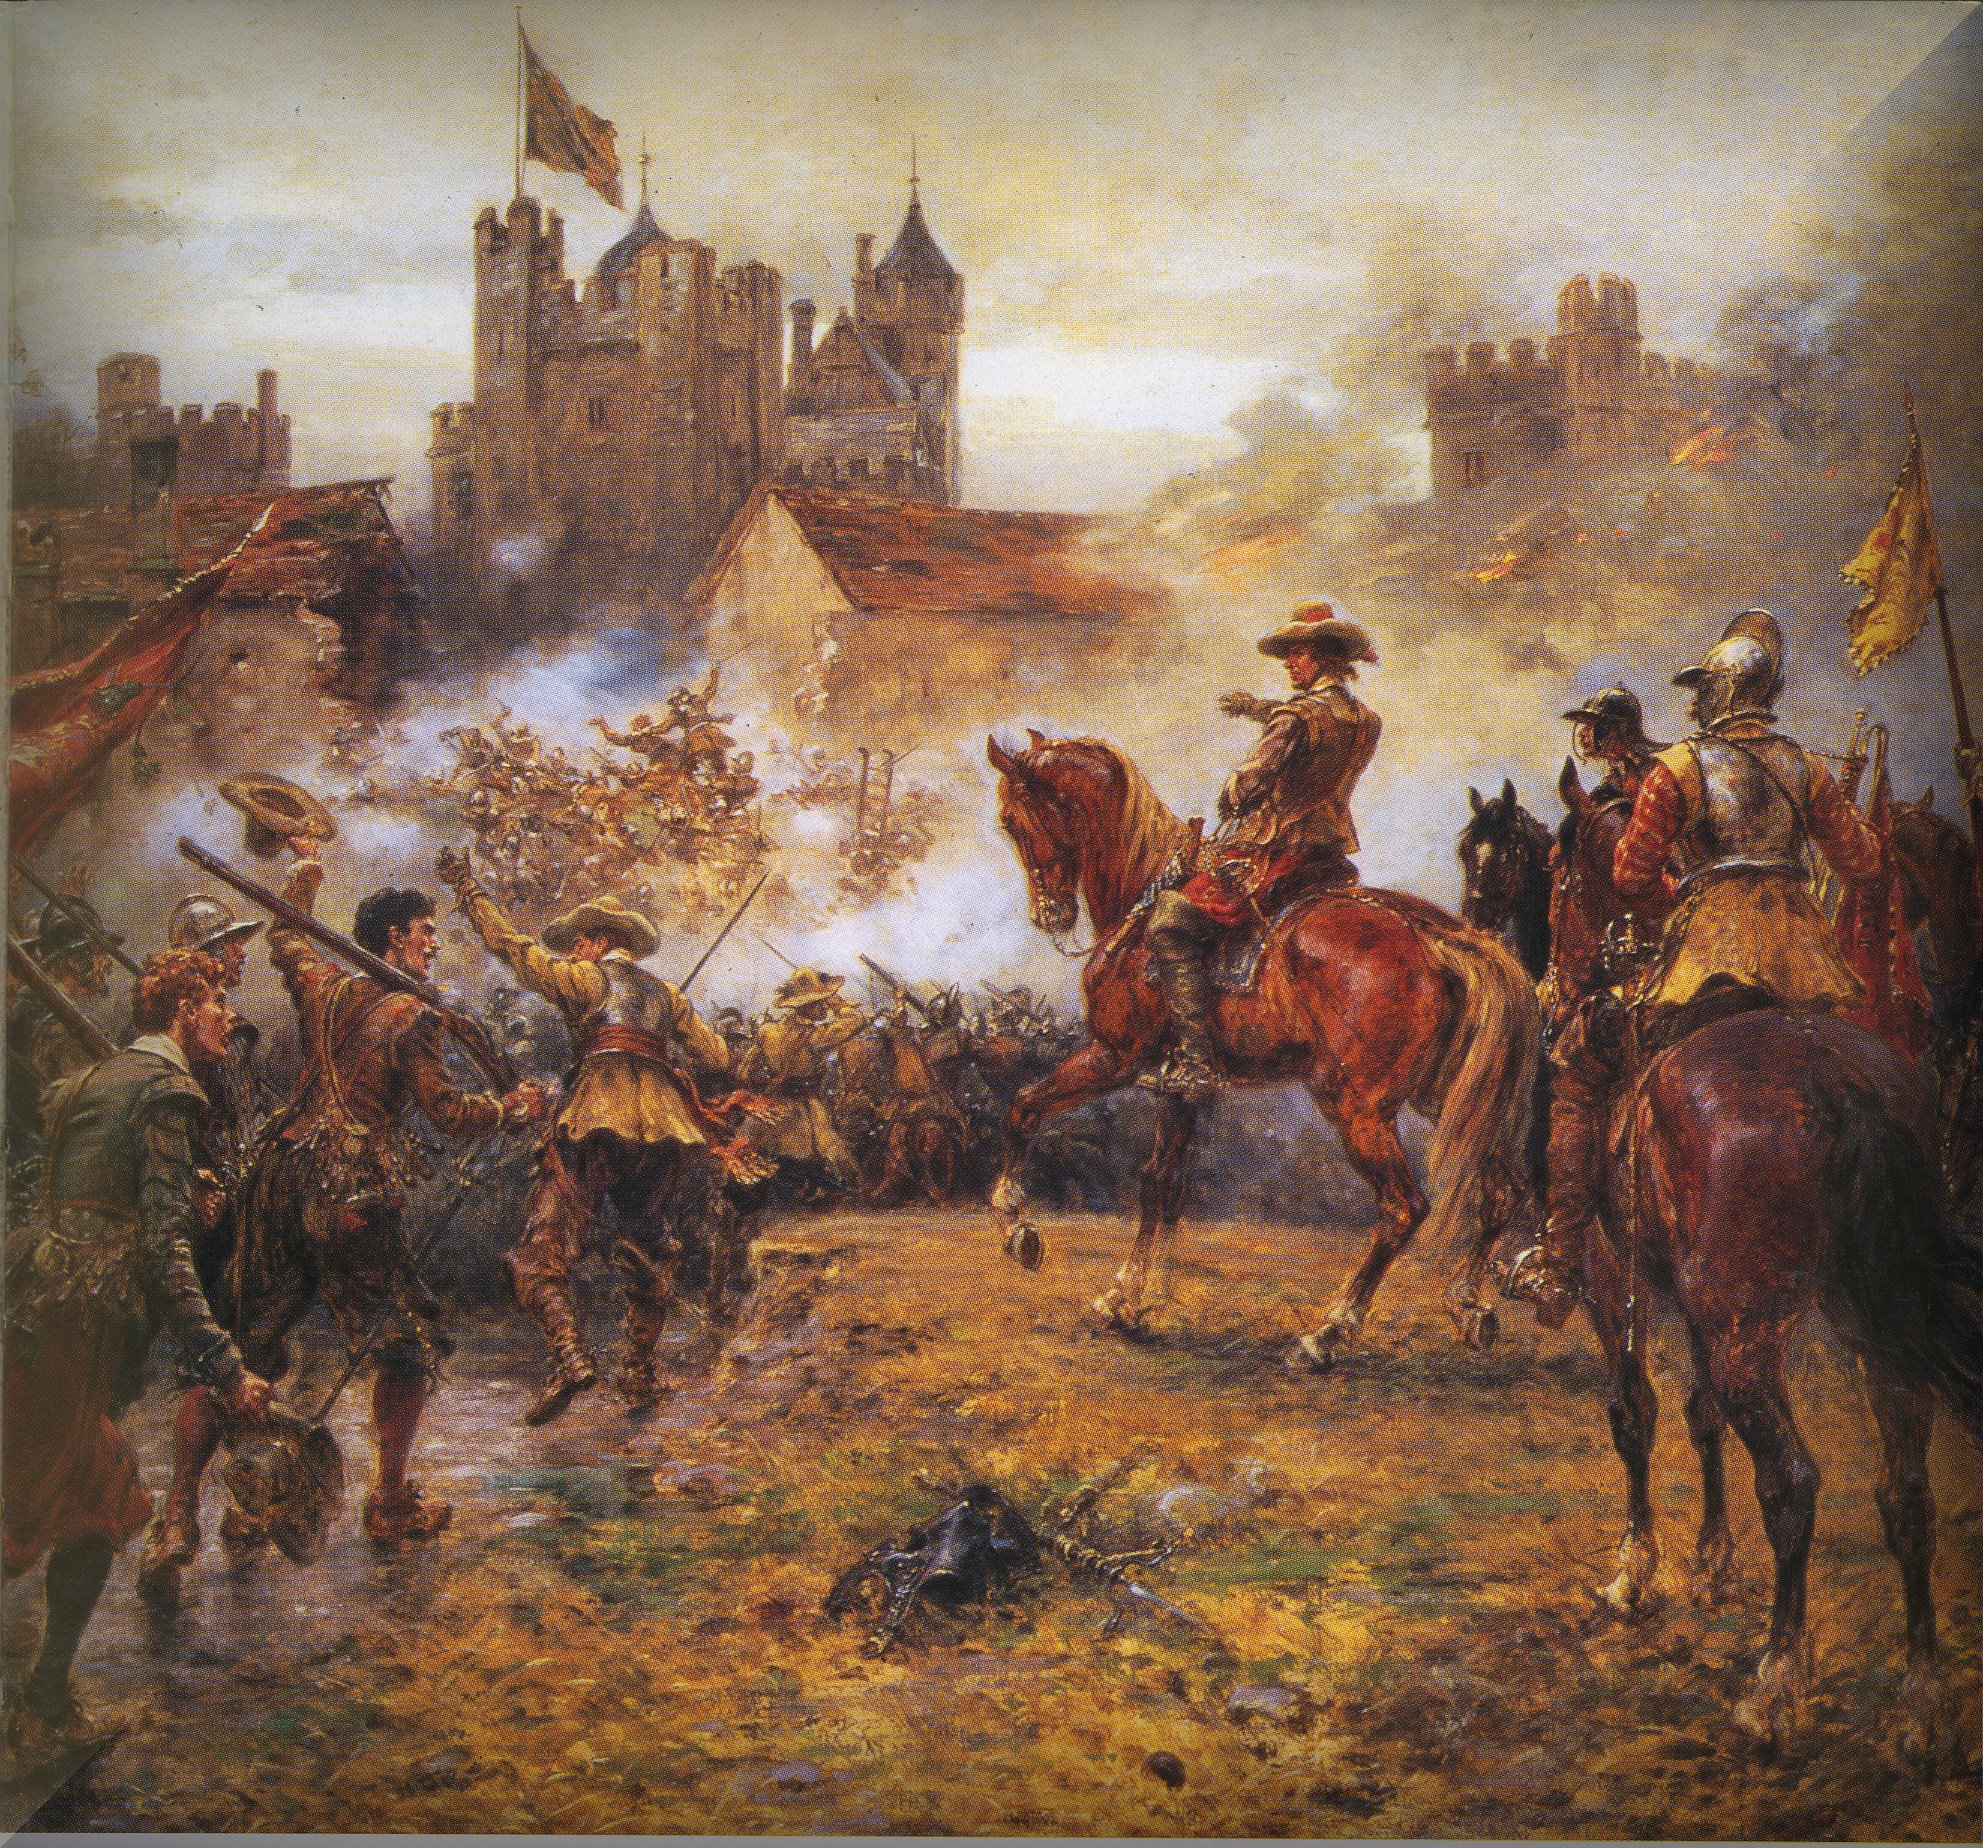 a history of civil war in england The english civil war fundamentally changed england its impact lives with us still as it changed england from an absolute monarchy to a constitutional monarchy and once and for all placing ultimate power in the house of commons however that war cu.